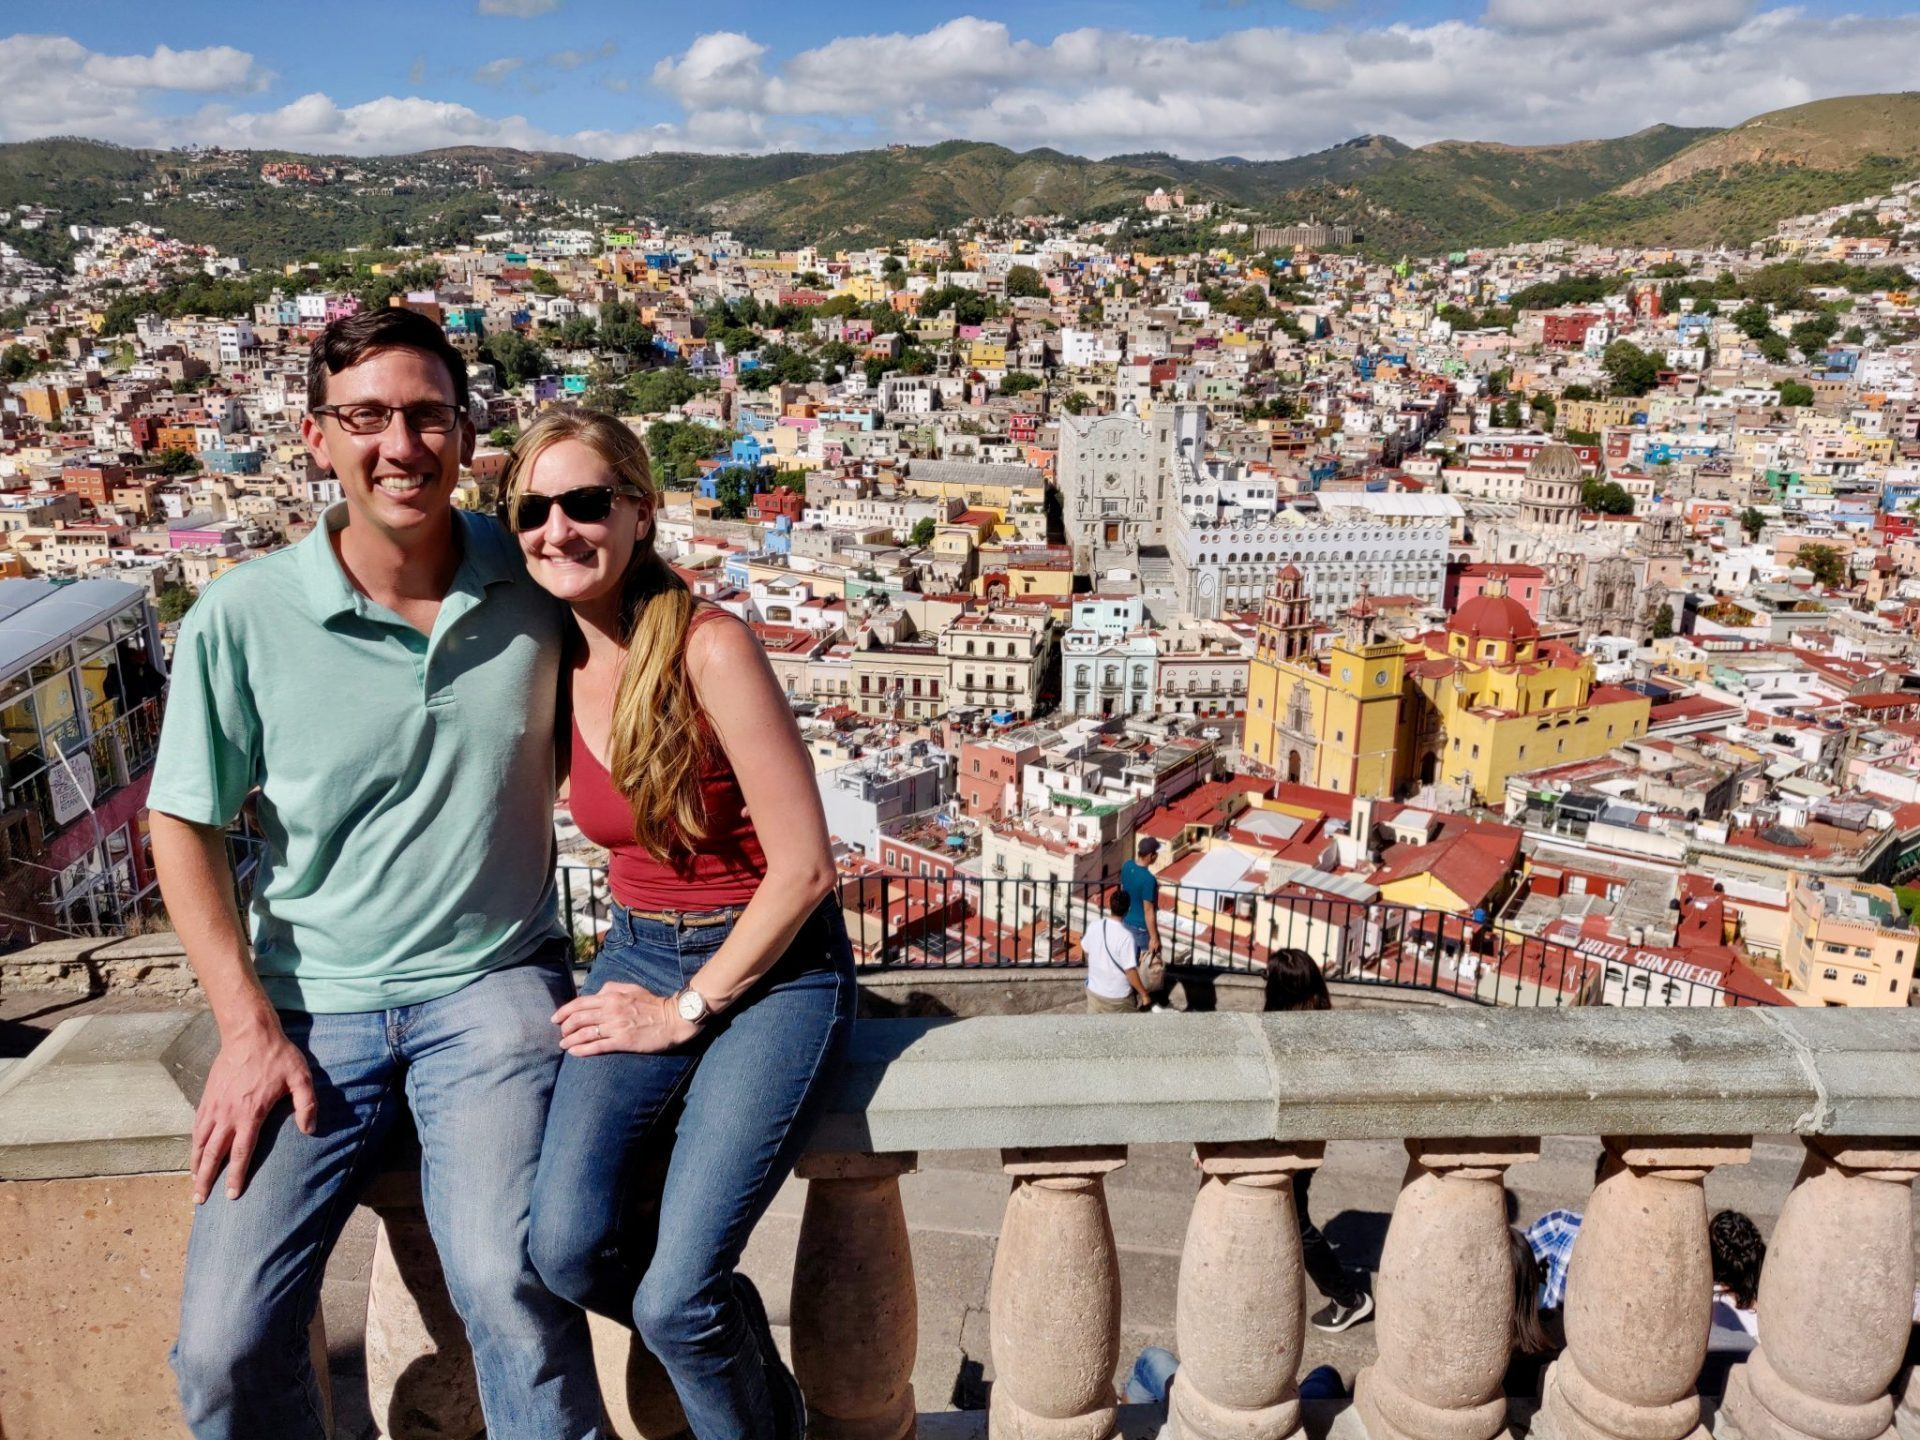 John & Heather at viewpoint in Guanajuato Mexico